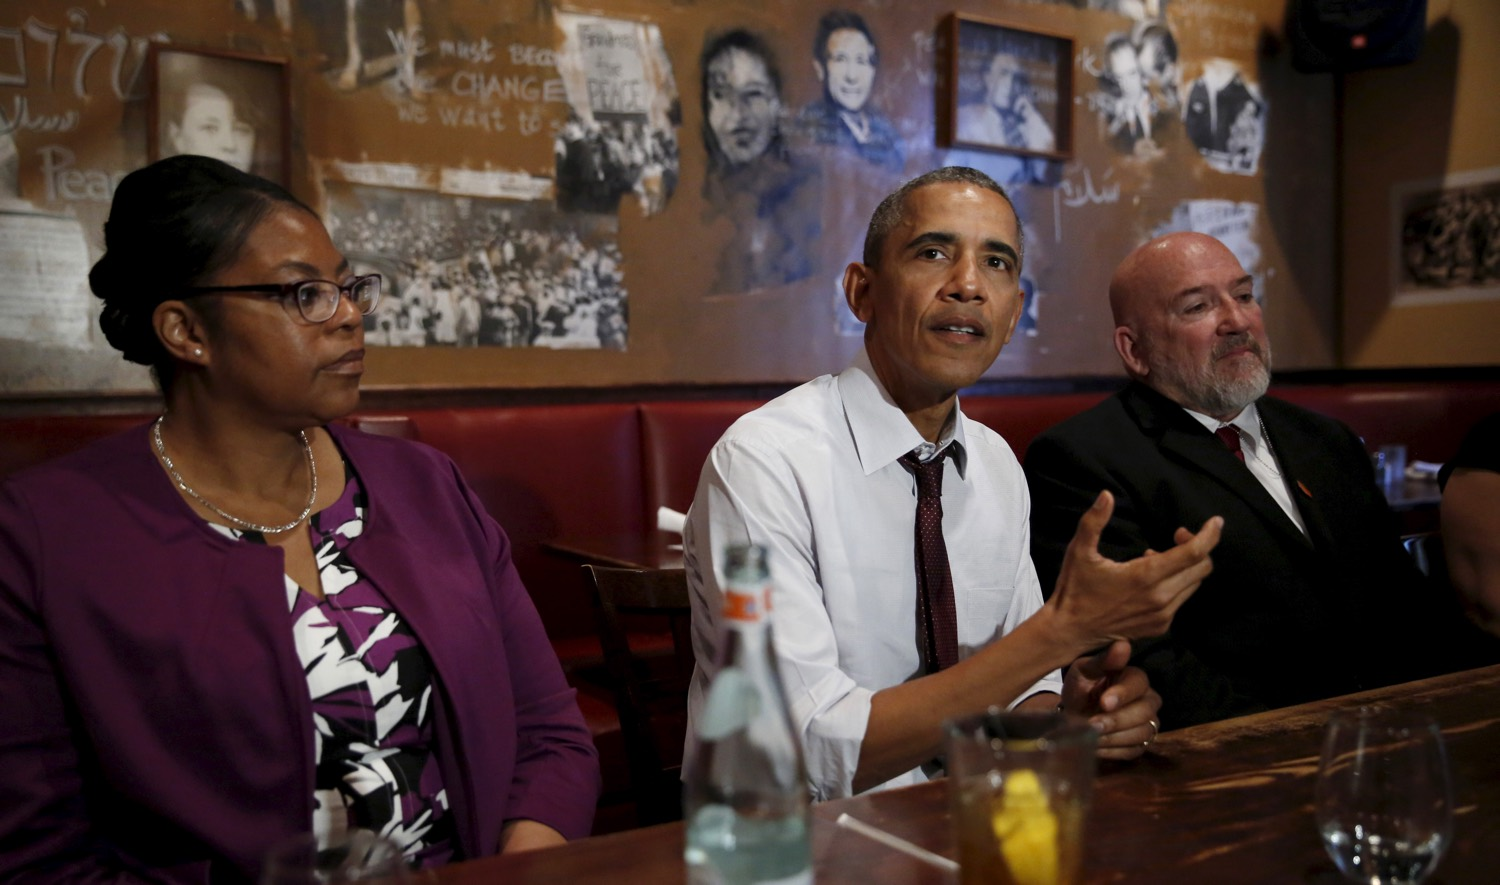 Obama with formerly incarcerated individuals who received commutations from his and previous administrations. March 30, 2016, DC.  With him, former inmates Romana Brant (L) and Phillip Emmert. REUTERS